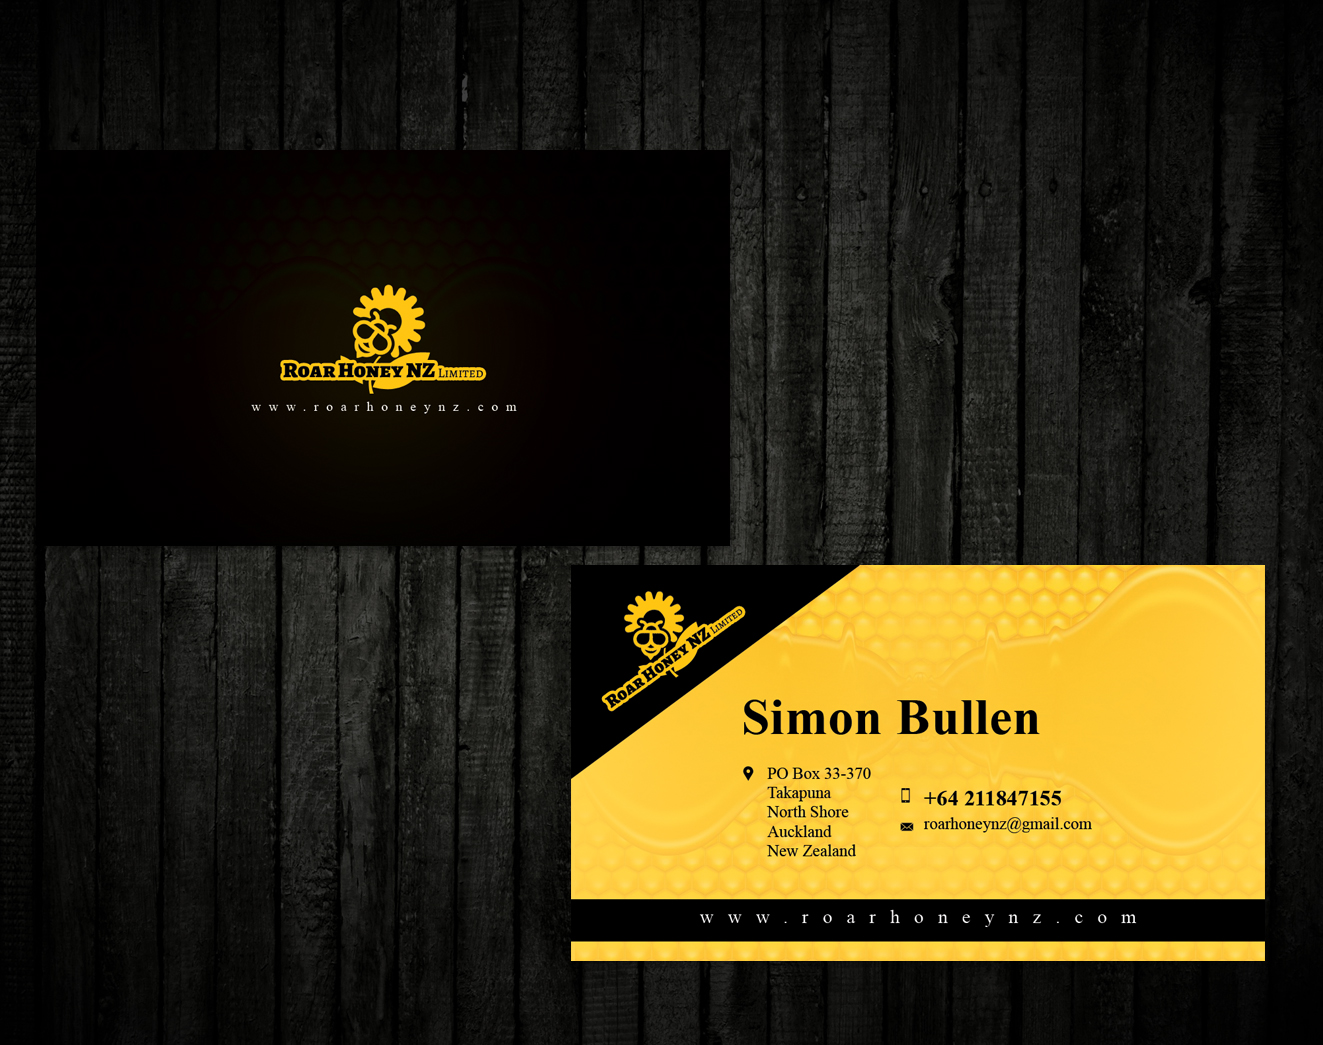 Modern professional wholesale business card design for roar honey business card design by ssensarma for roar honey nz limited design 13836414 reheart Images